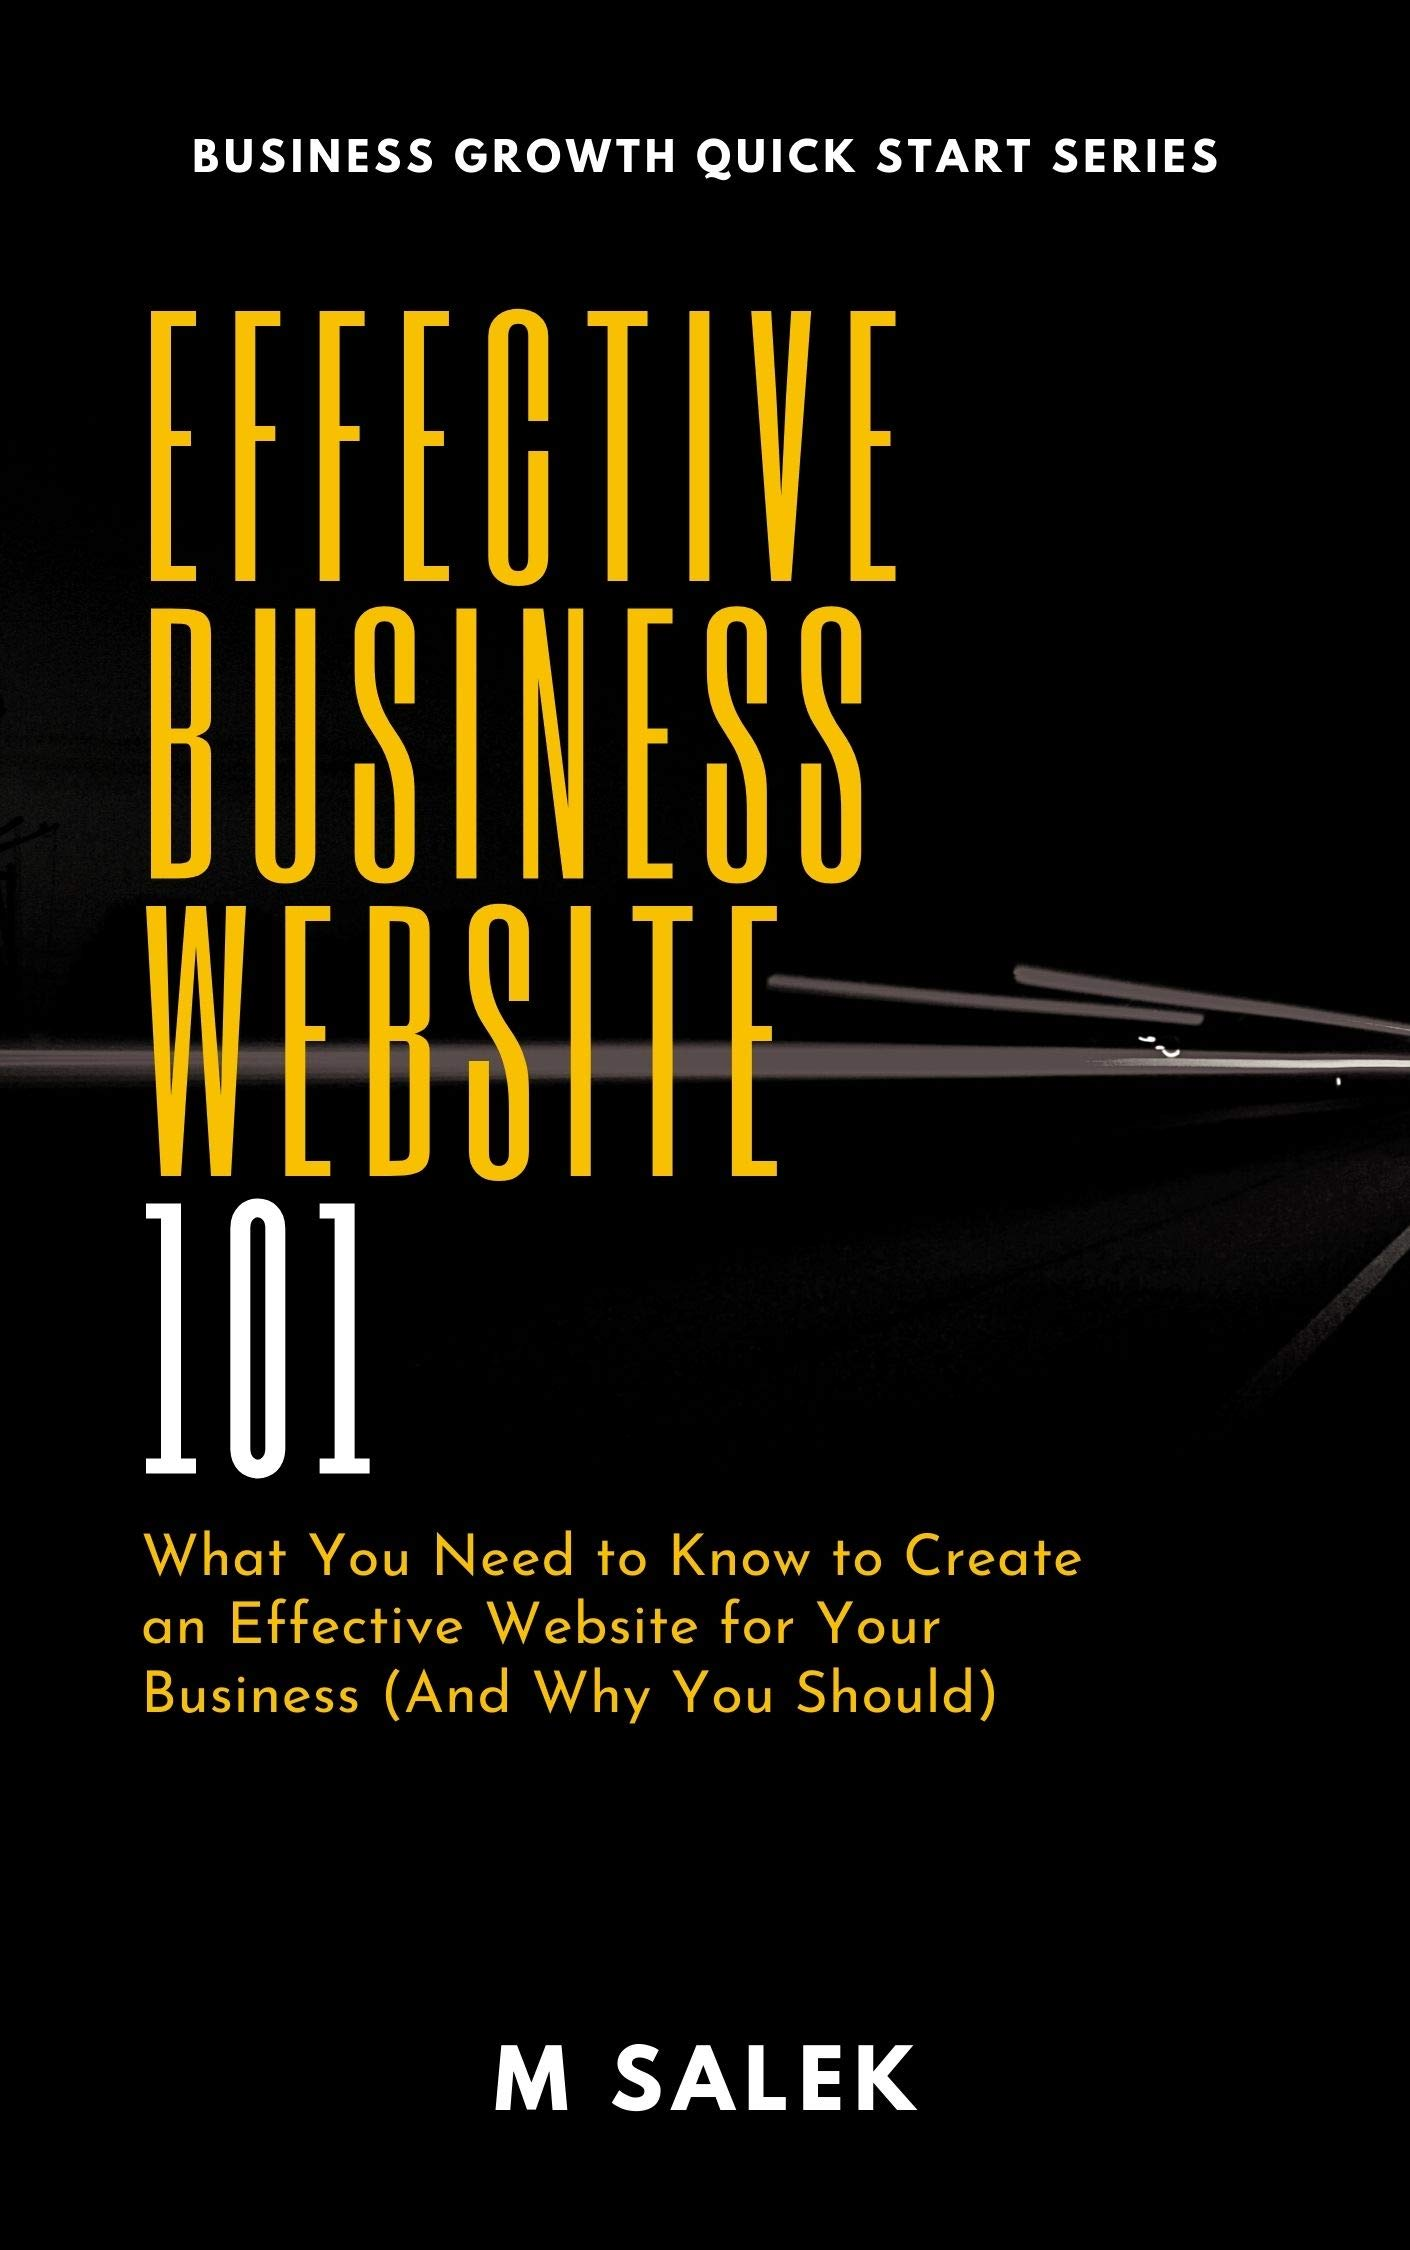 Effective Business Website 101: What You Need to Know to Create an Effective Website for Your Business (And Why You Should) (Business Growth Quick Start Series Book 16)